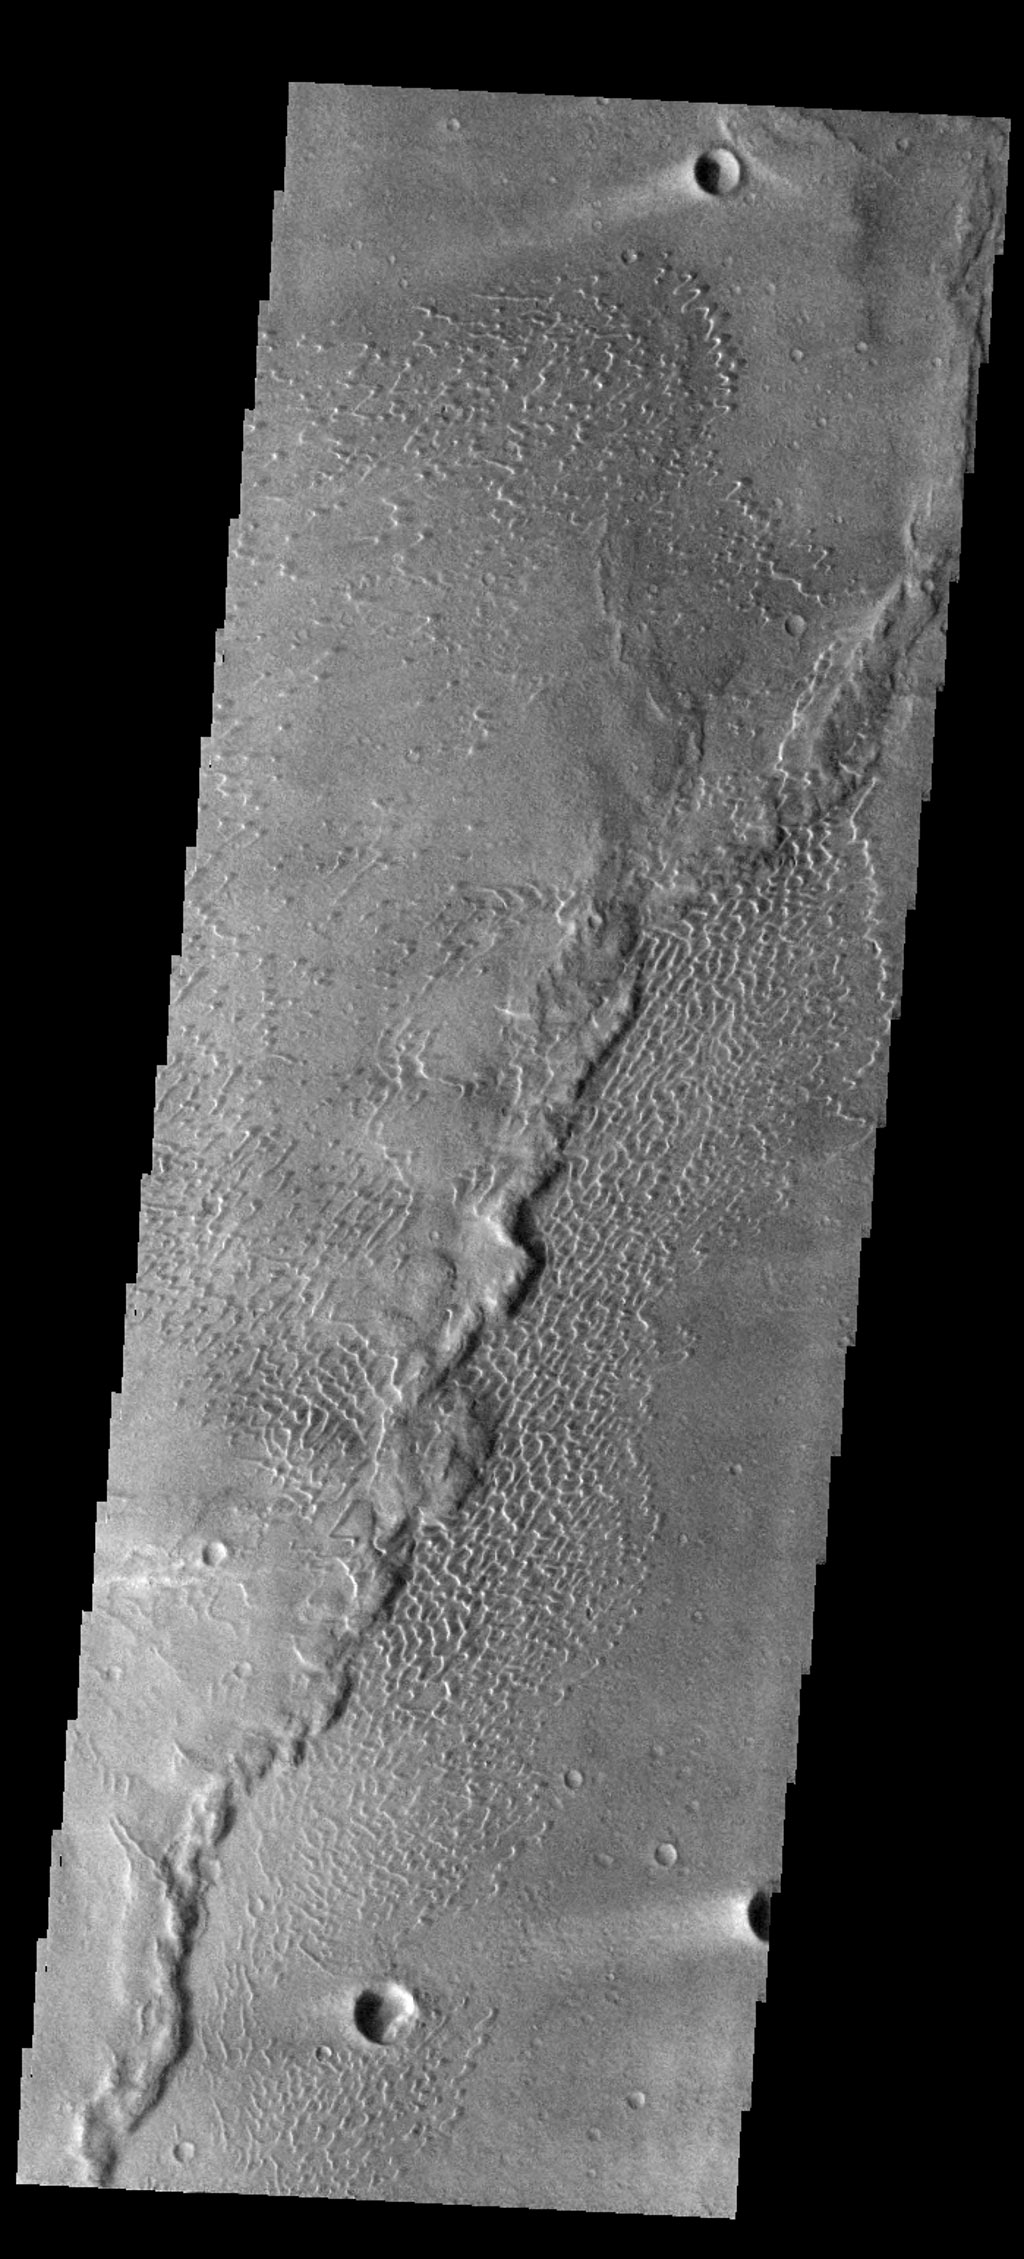 The dunes in this image captured by NASA's Mars Odyssey spacecraft are located on the margin of Meroe Patera.